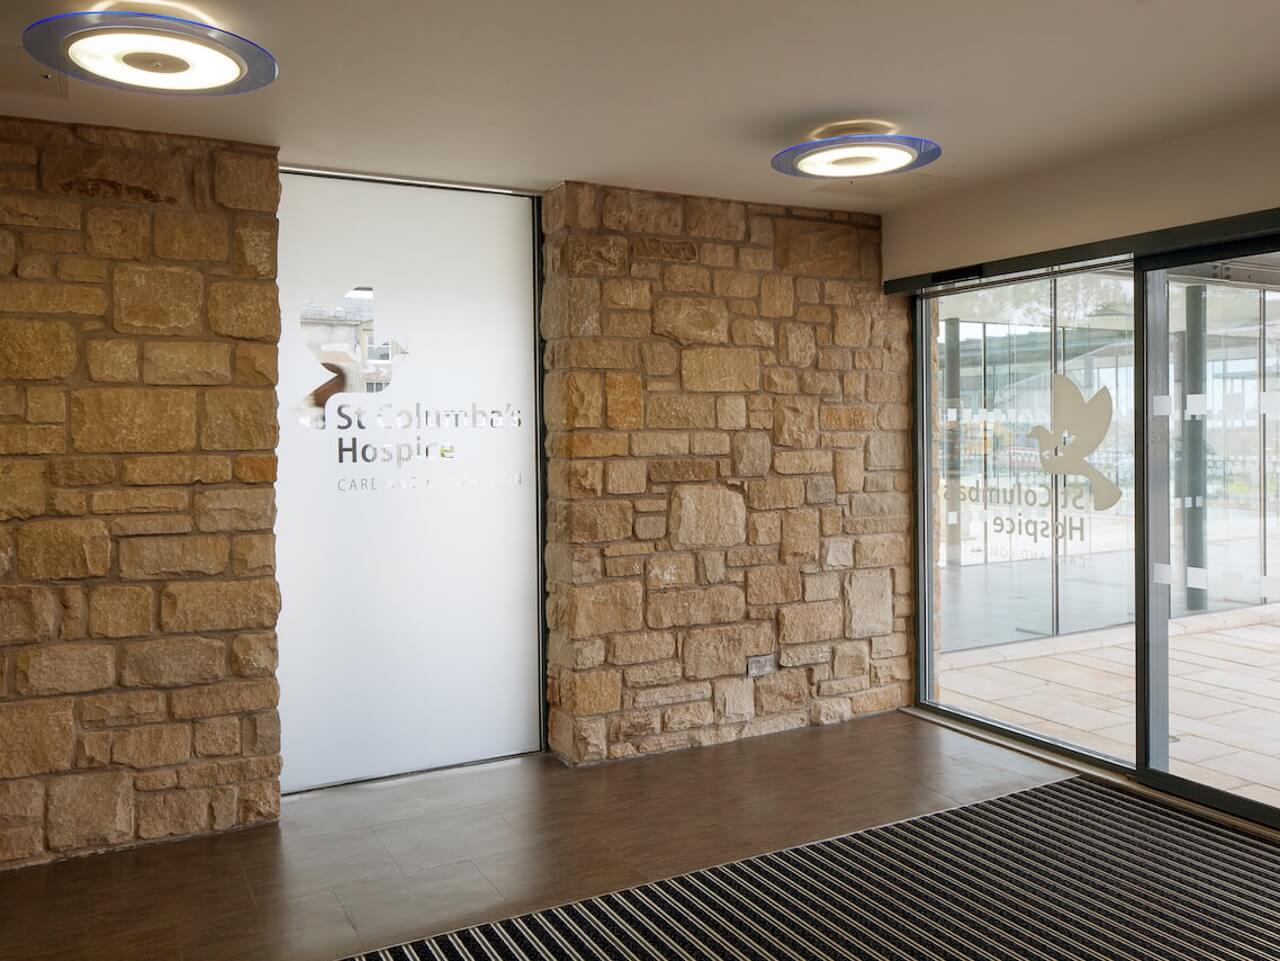 An internal glass partition with frosting and the St Columbas Hospice logo etched into it